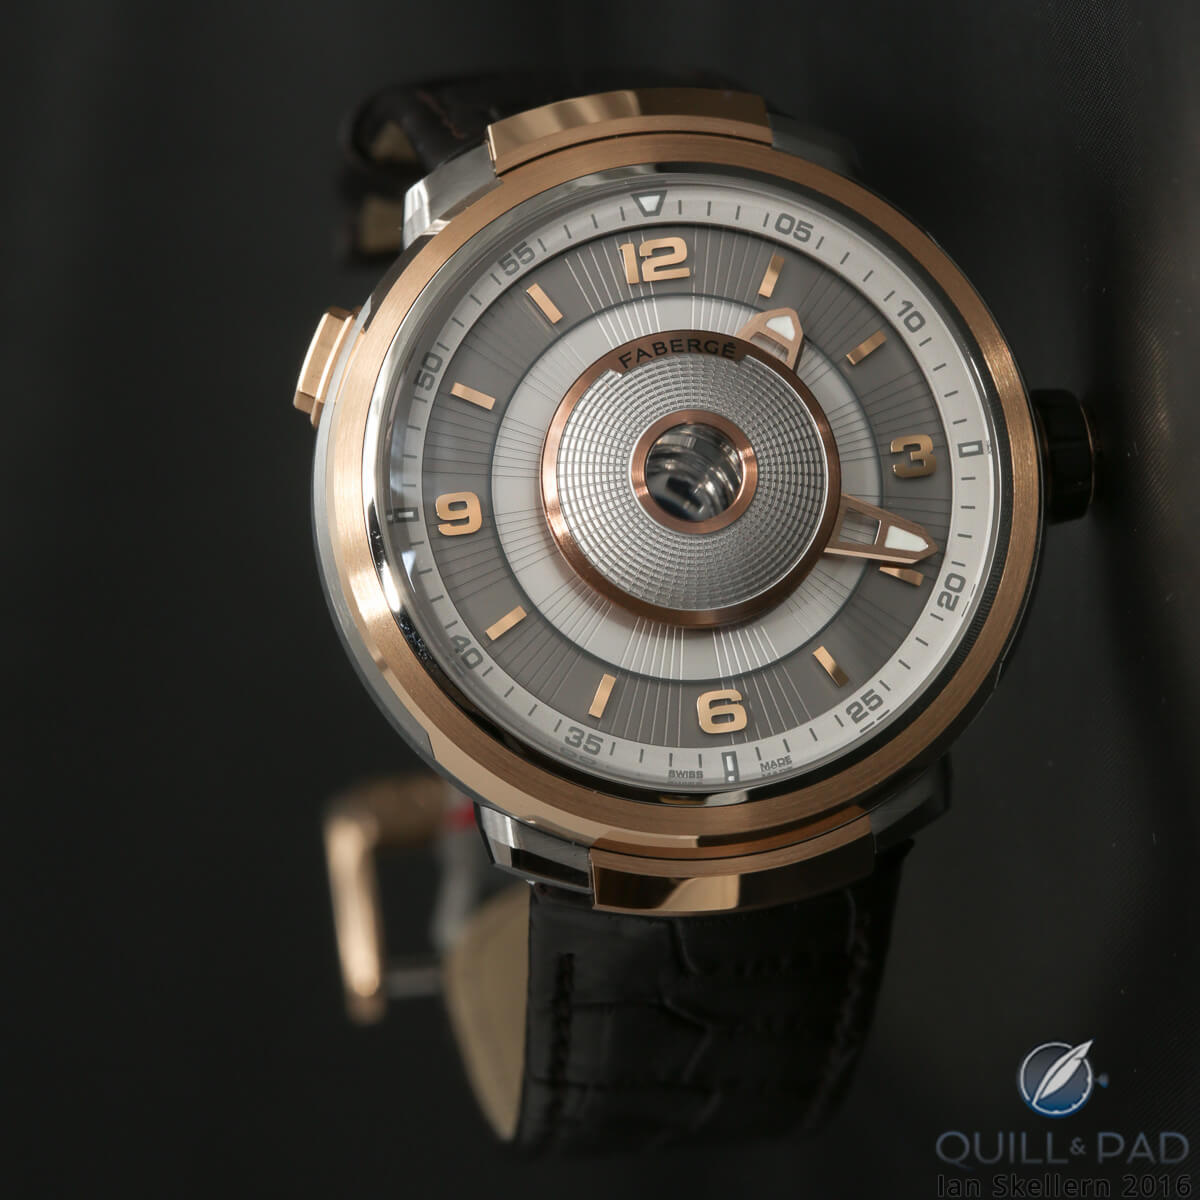 Fabergé Visionnaire DTZ in pink gold